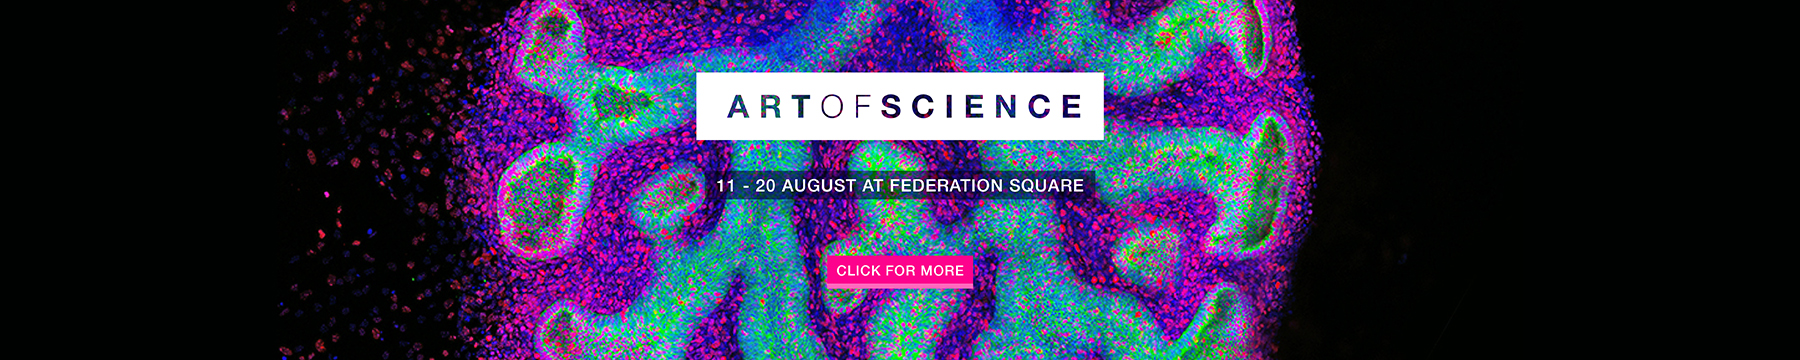 Art of Science exhibition promotion